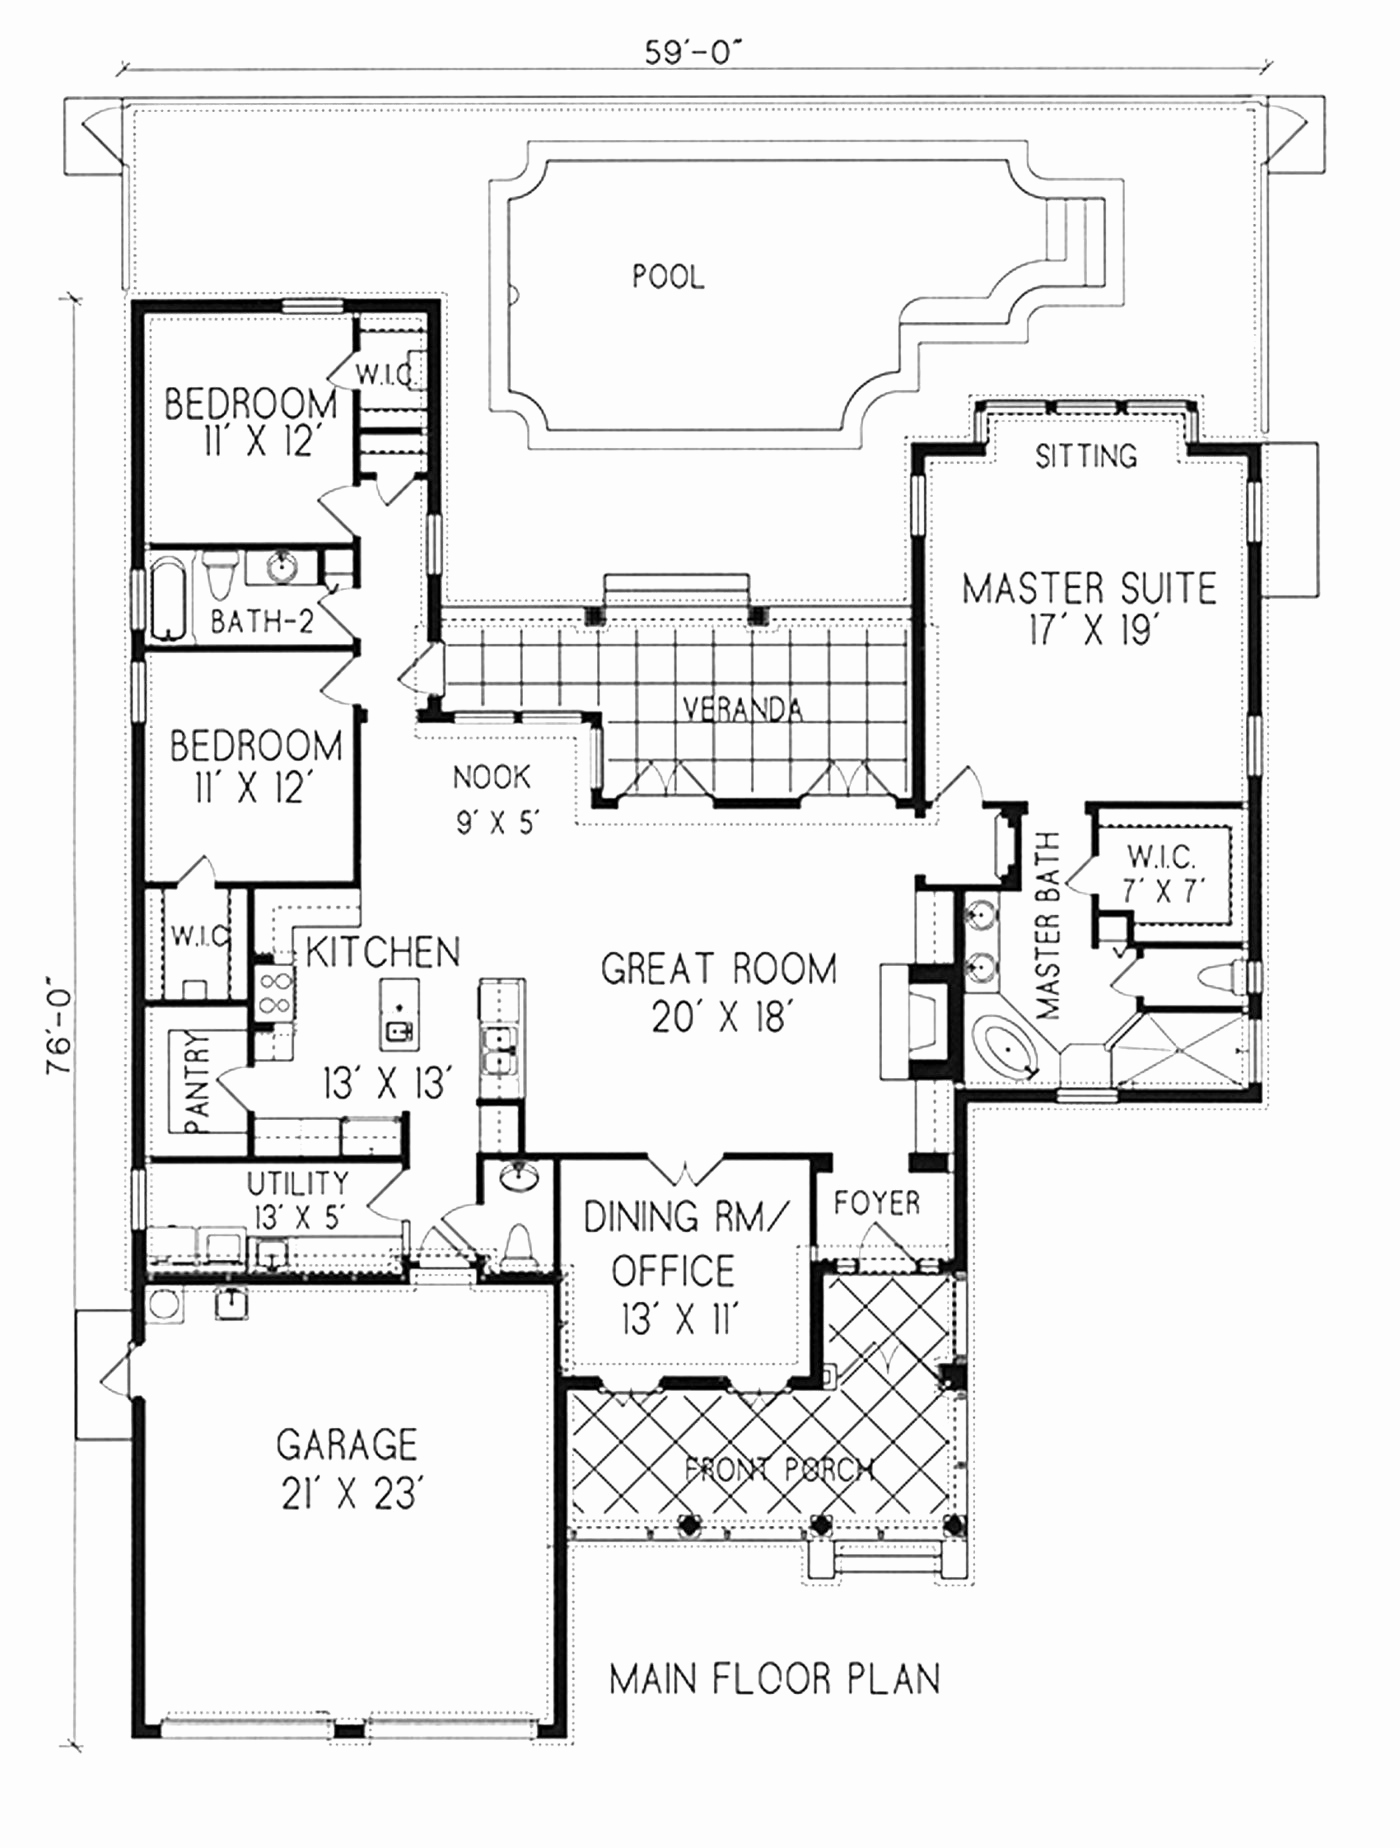 Inside Of House Drawing at GetDrawings.com | Free for ... on house in valencia ca, house plans ranch style home, house plans for a family of 5, house in law suite addition plans, house plans with mother daughter suites, house plans for disabled, house floor plans, house exterior, house plans with detached in law suite, house with basement garage, house plans with courtyard in middle, house above garage, house plans under 600 feet, house plans with apartment suites, house plans with 2 master suites, homes with in-law suites, house with detached garage breezeway, house with center courtyard, house plans with kitchen in back of house,